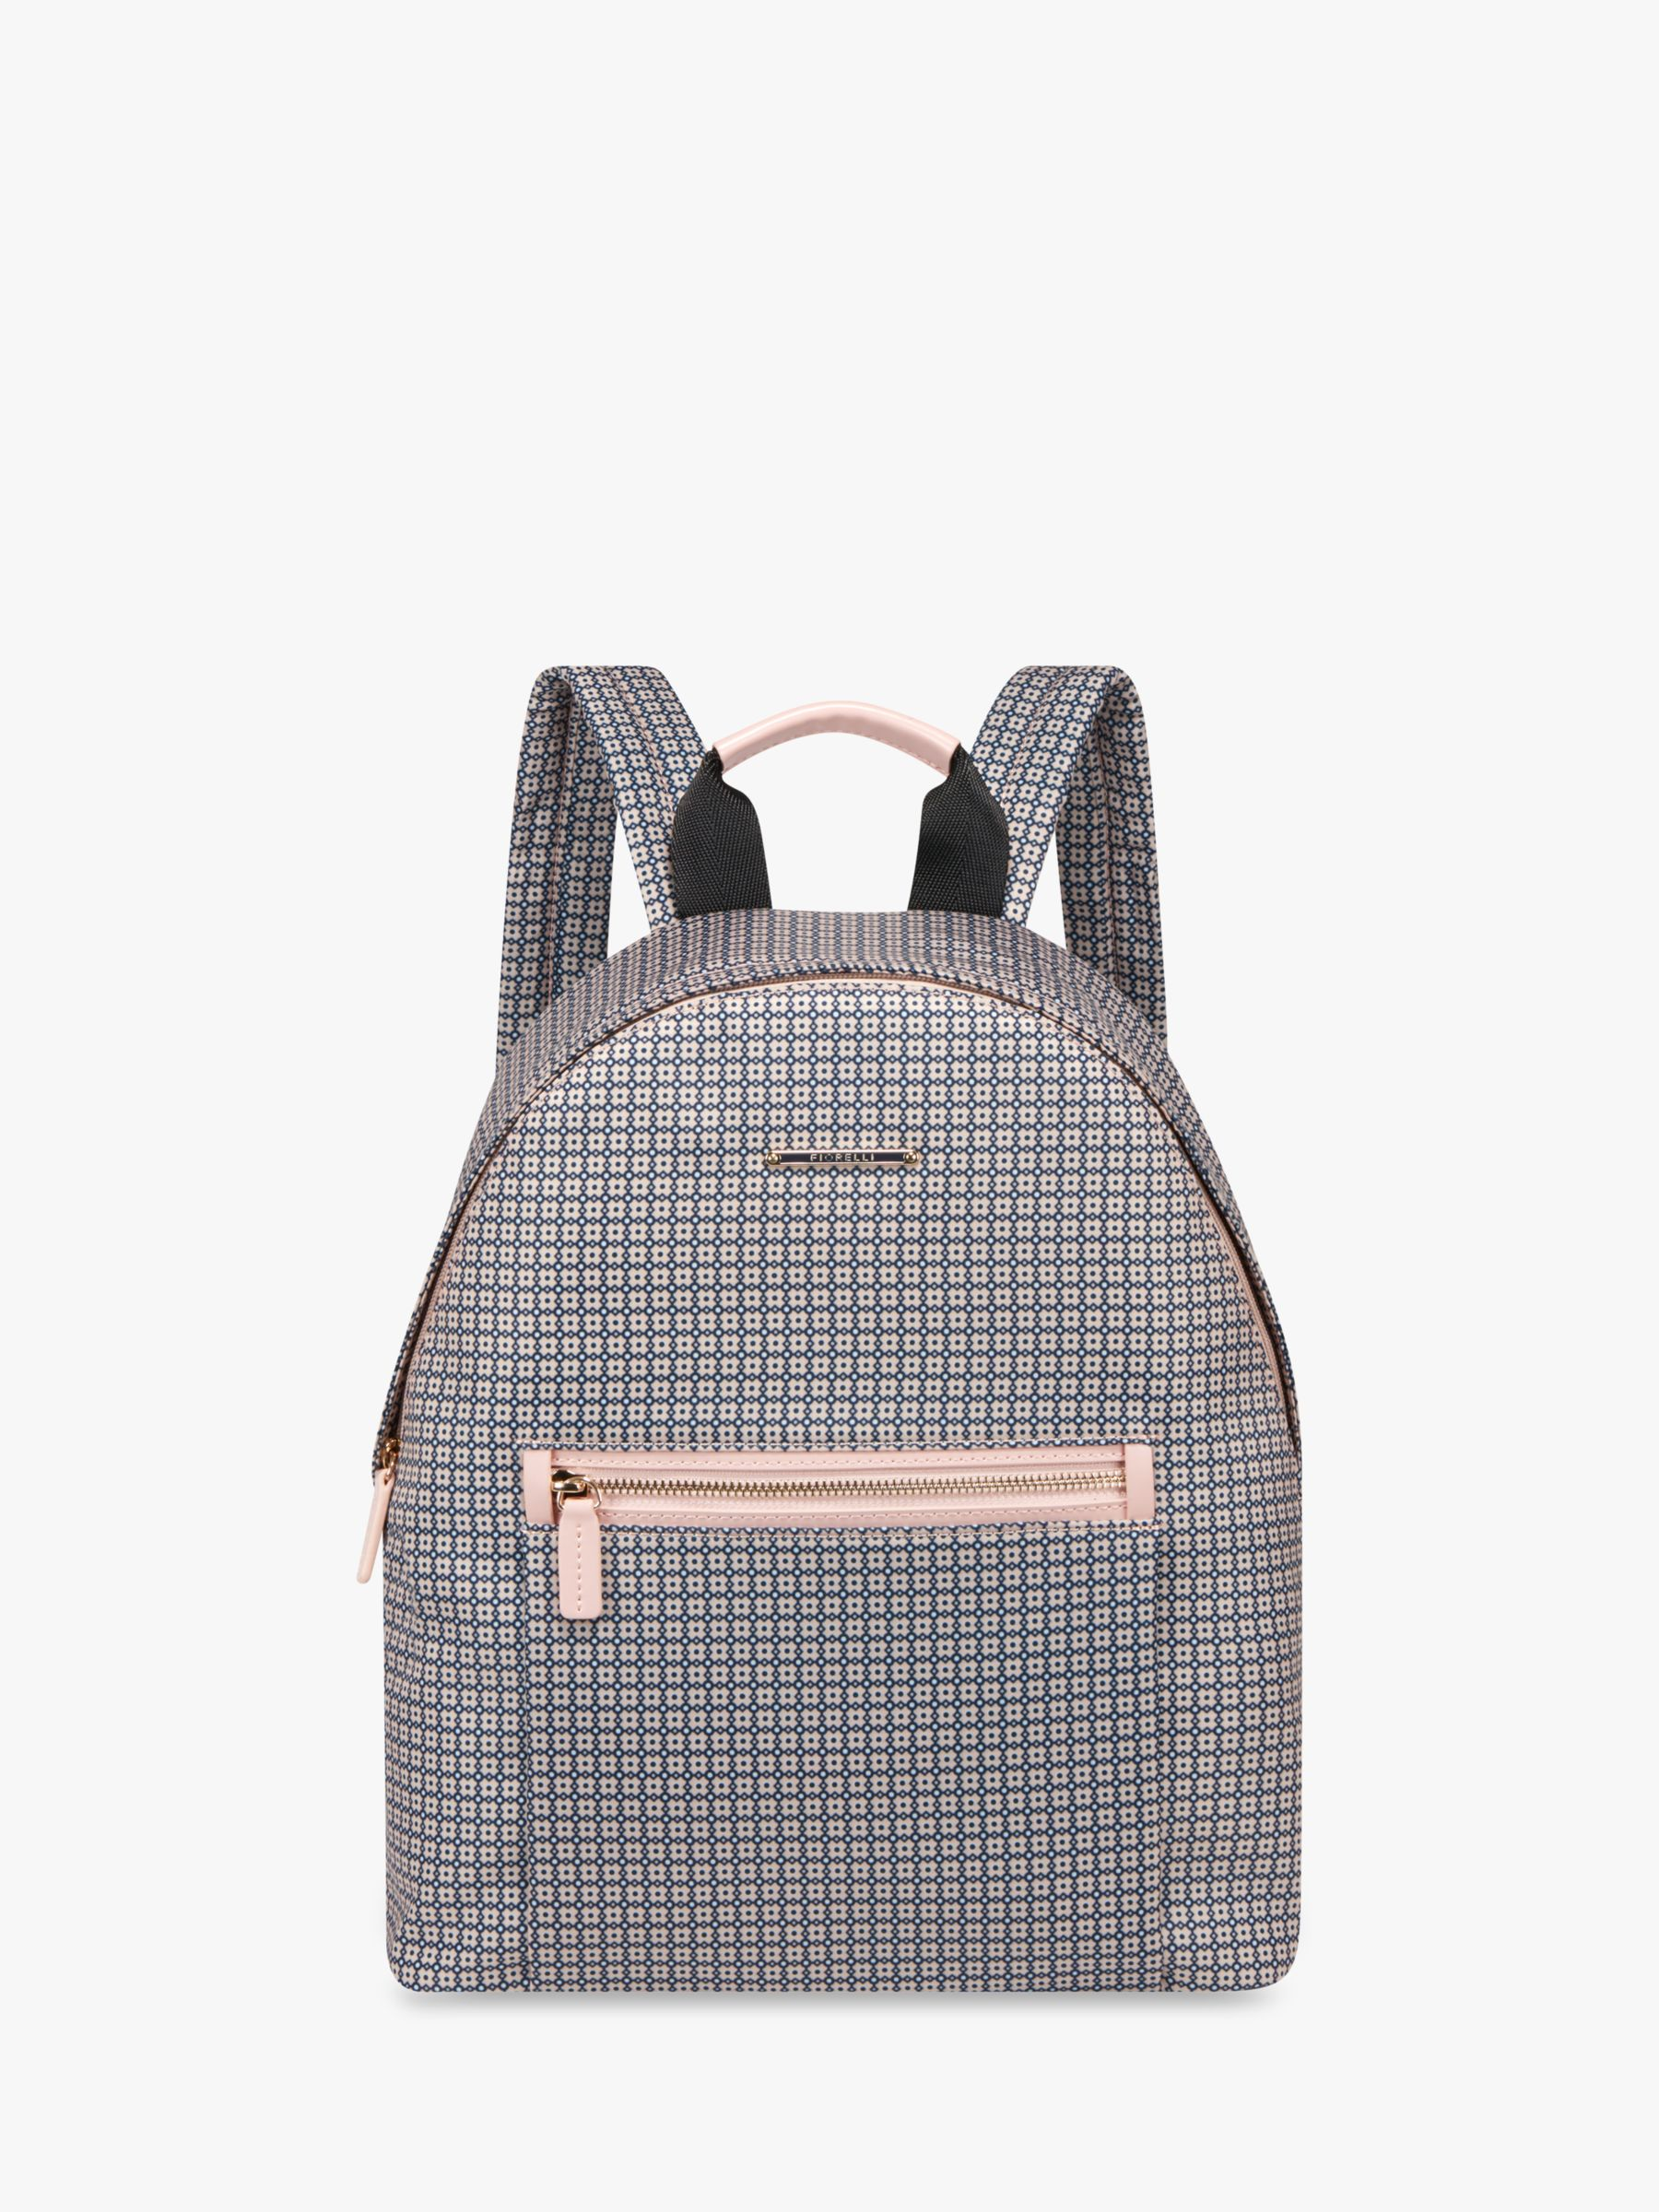 Fiorelli Fiorelli Sarah Backpack